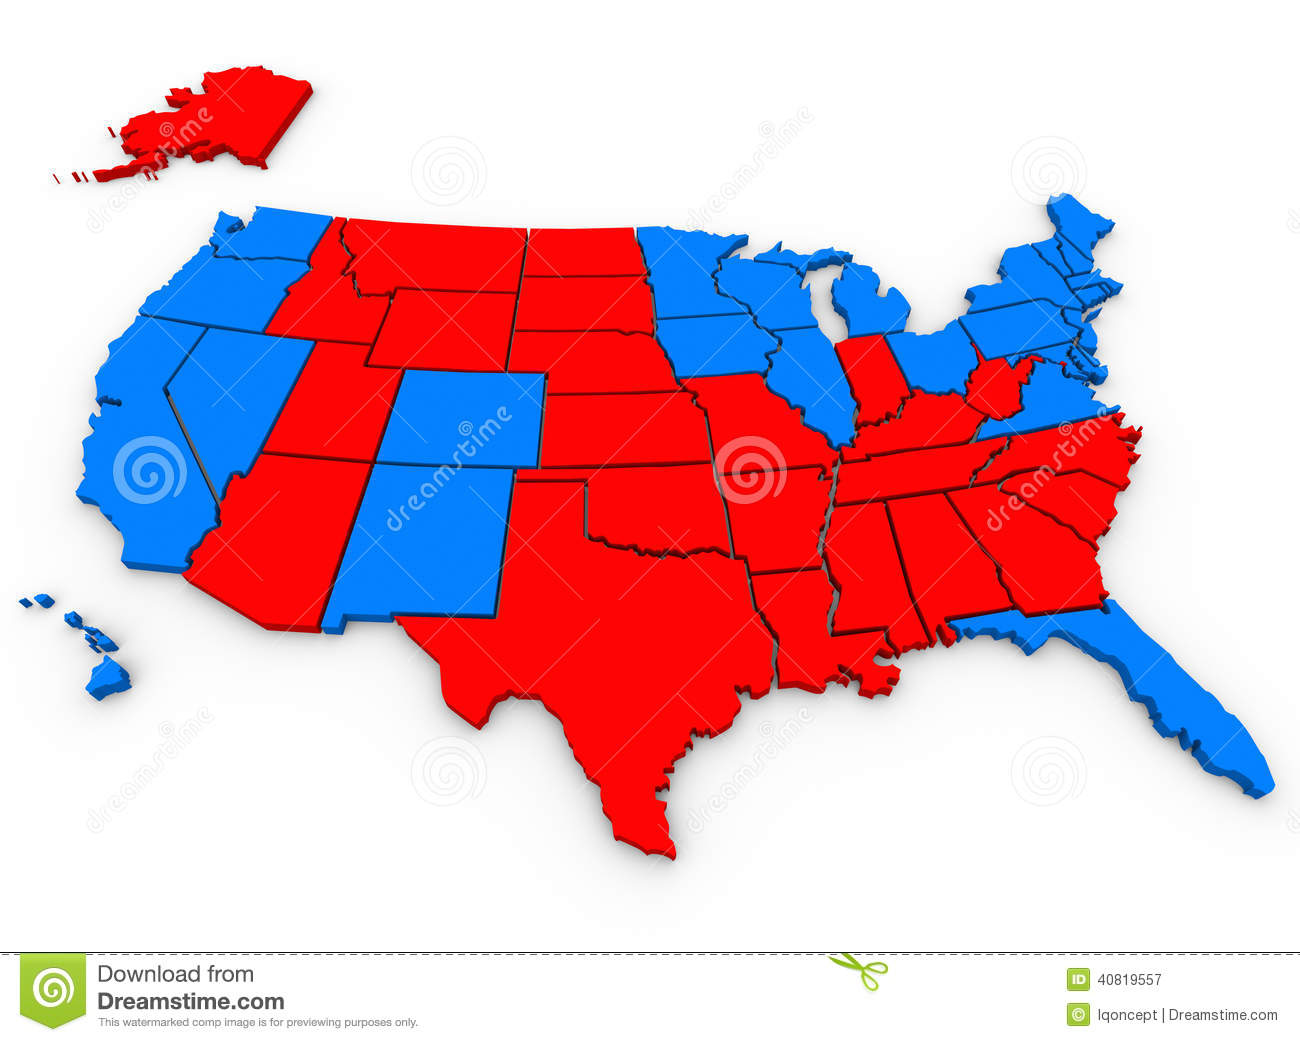 Best Ideas About  Presidential Election Map On Pinterest - Us map red blue states 2012